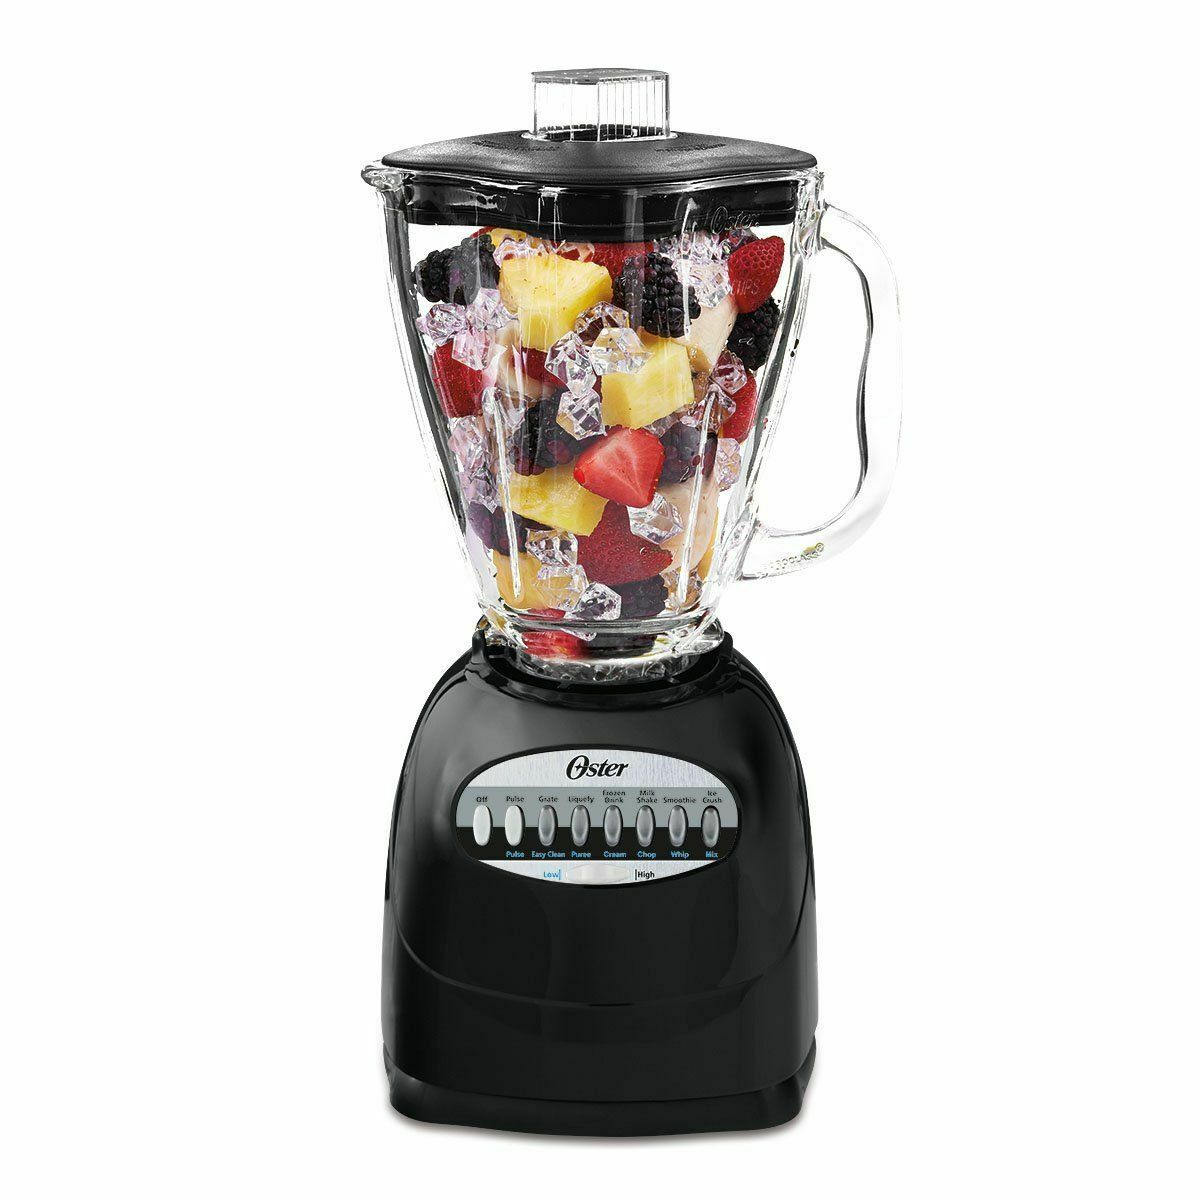 BRAND NEW Oster Blender 10 Speed 700W with 6 Cup Jar 006706